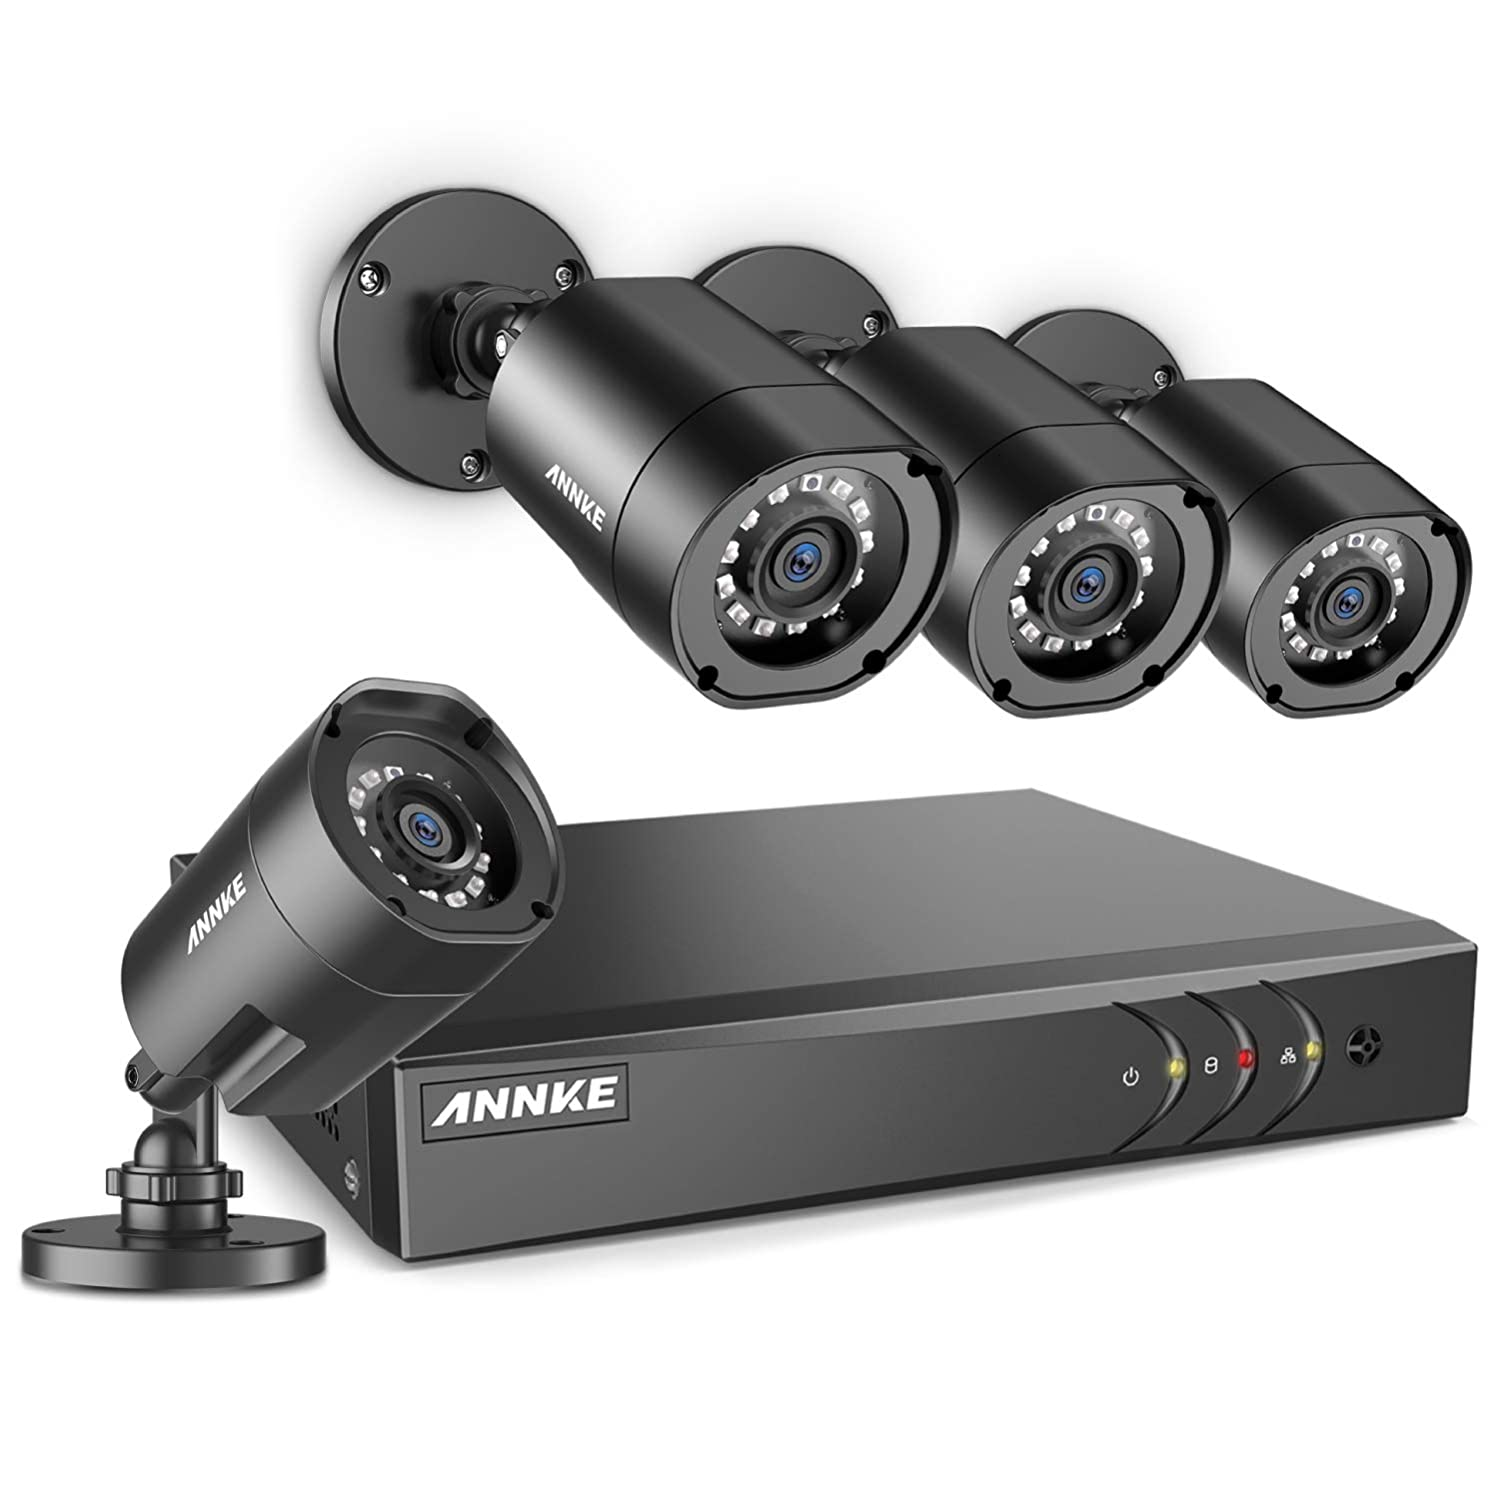 ANNKE Security Camera System 4X 1080P Weatherproof Bullet CCTV Cameras and 4CH 1080P Lite DVR Recorder, H.264+ 1080P HDMI Output, Motion-Triggered Email Alert and Easy Remote View, NO Hard Drive